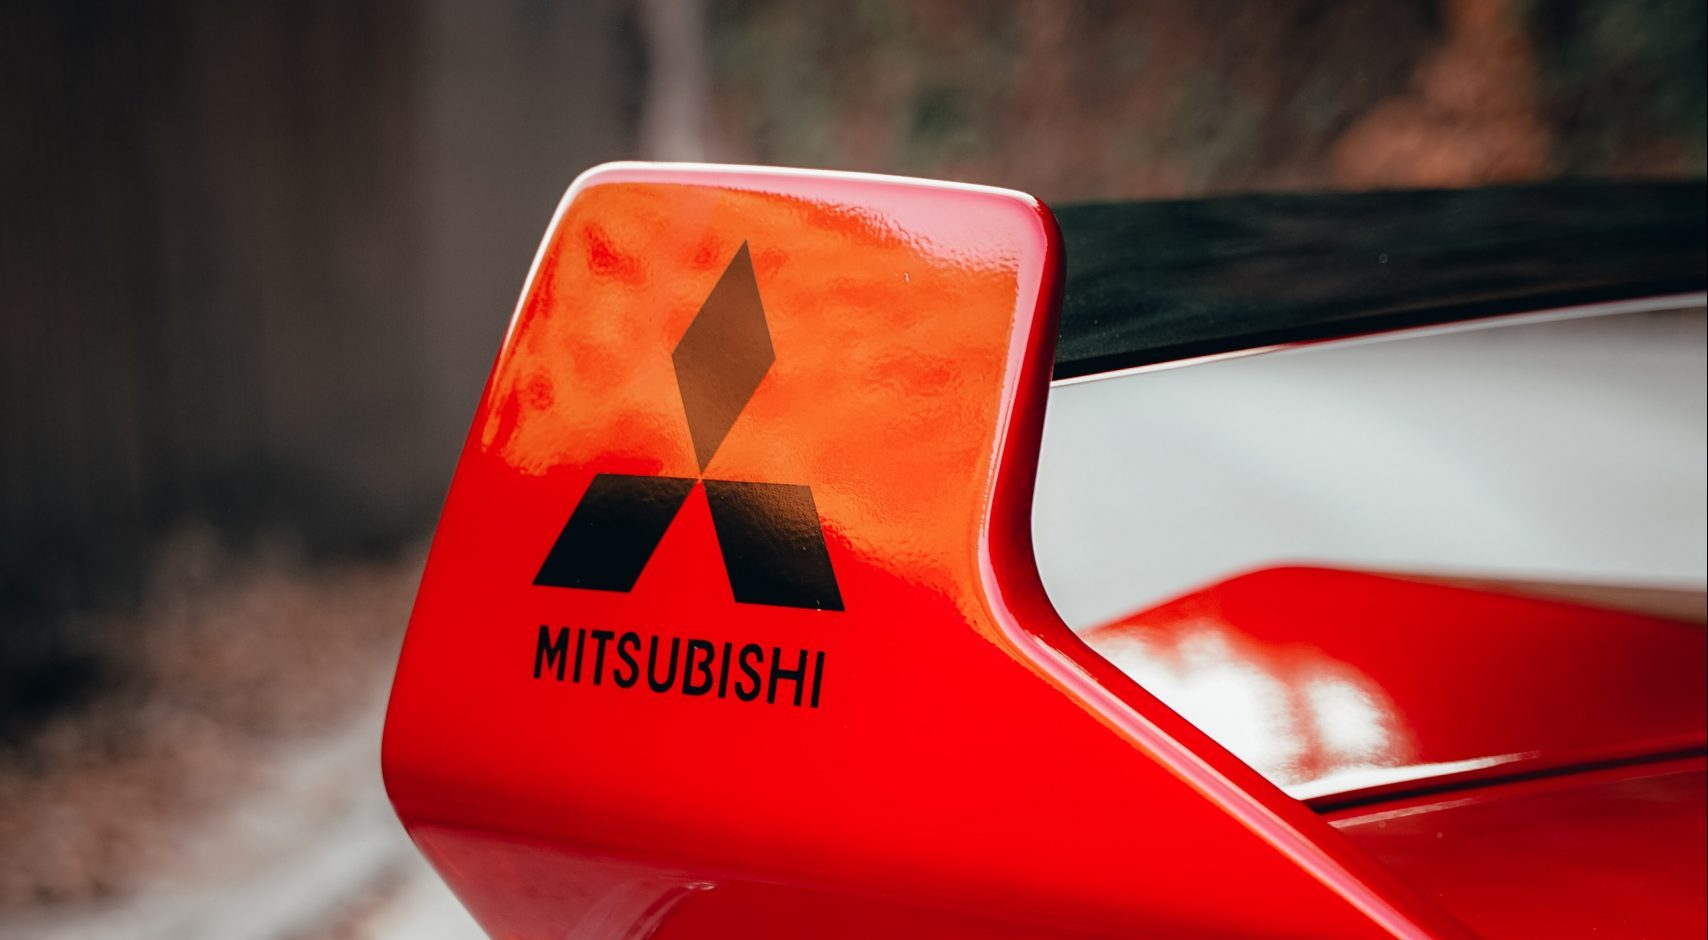 Mitsubishi To Sell Legacy Models On New Auction Website Pretty Soon